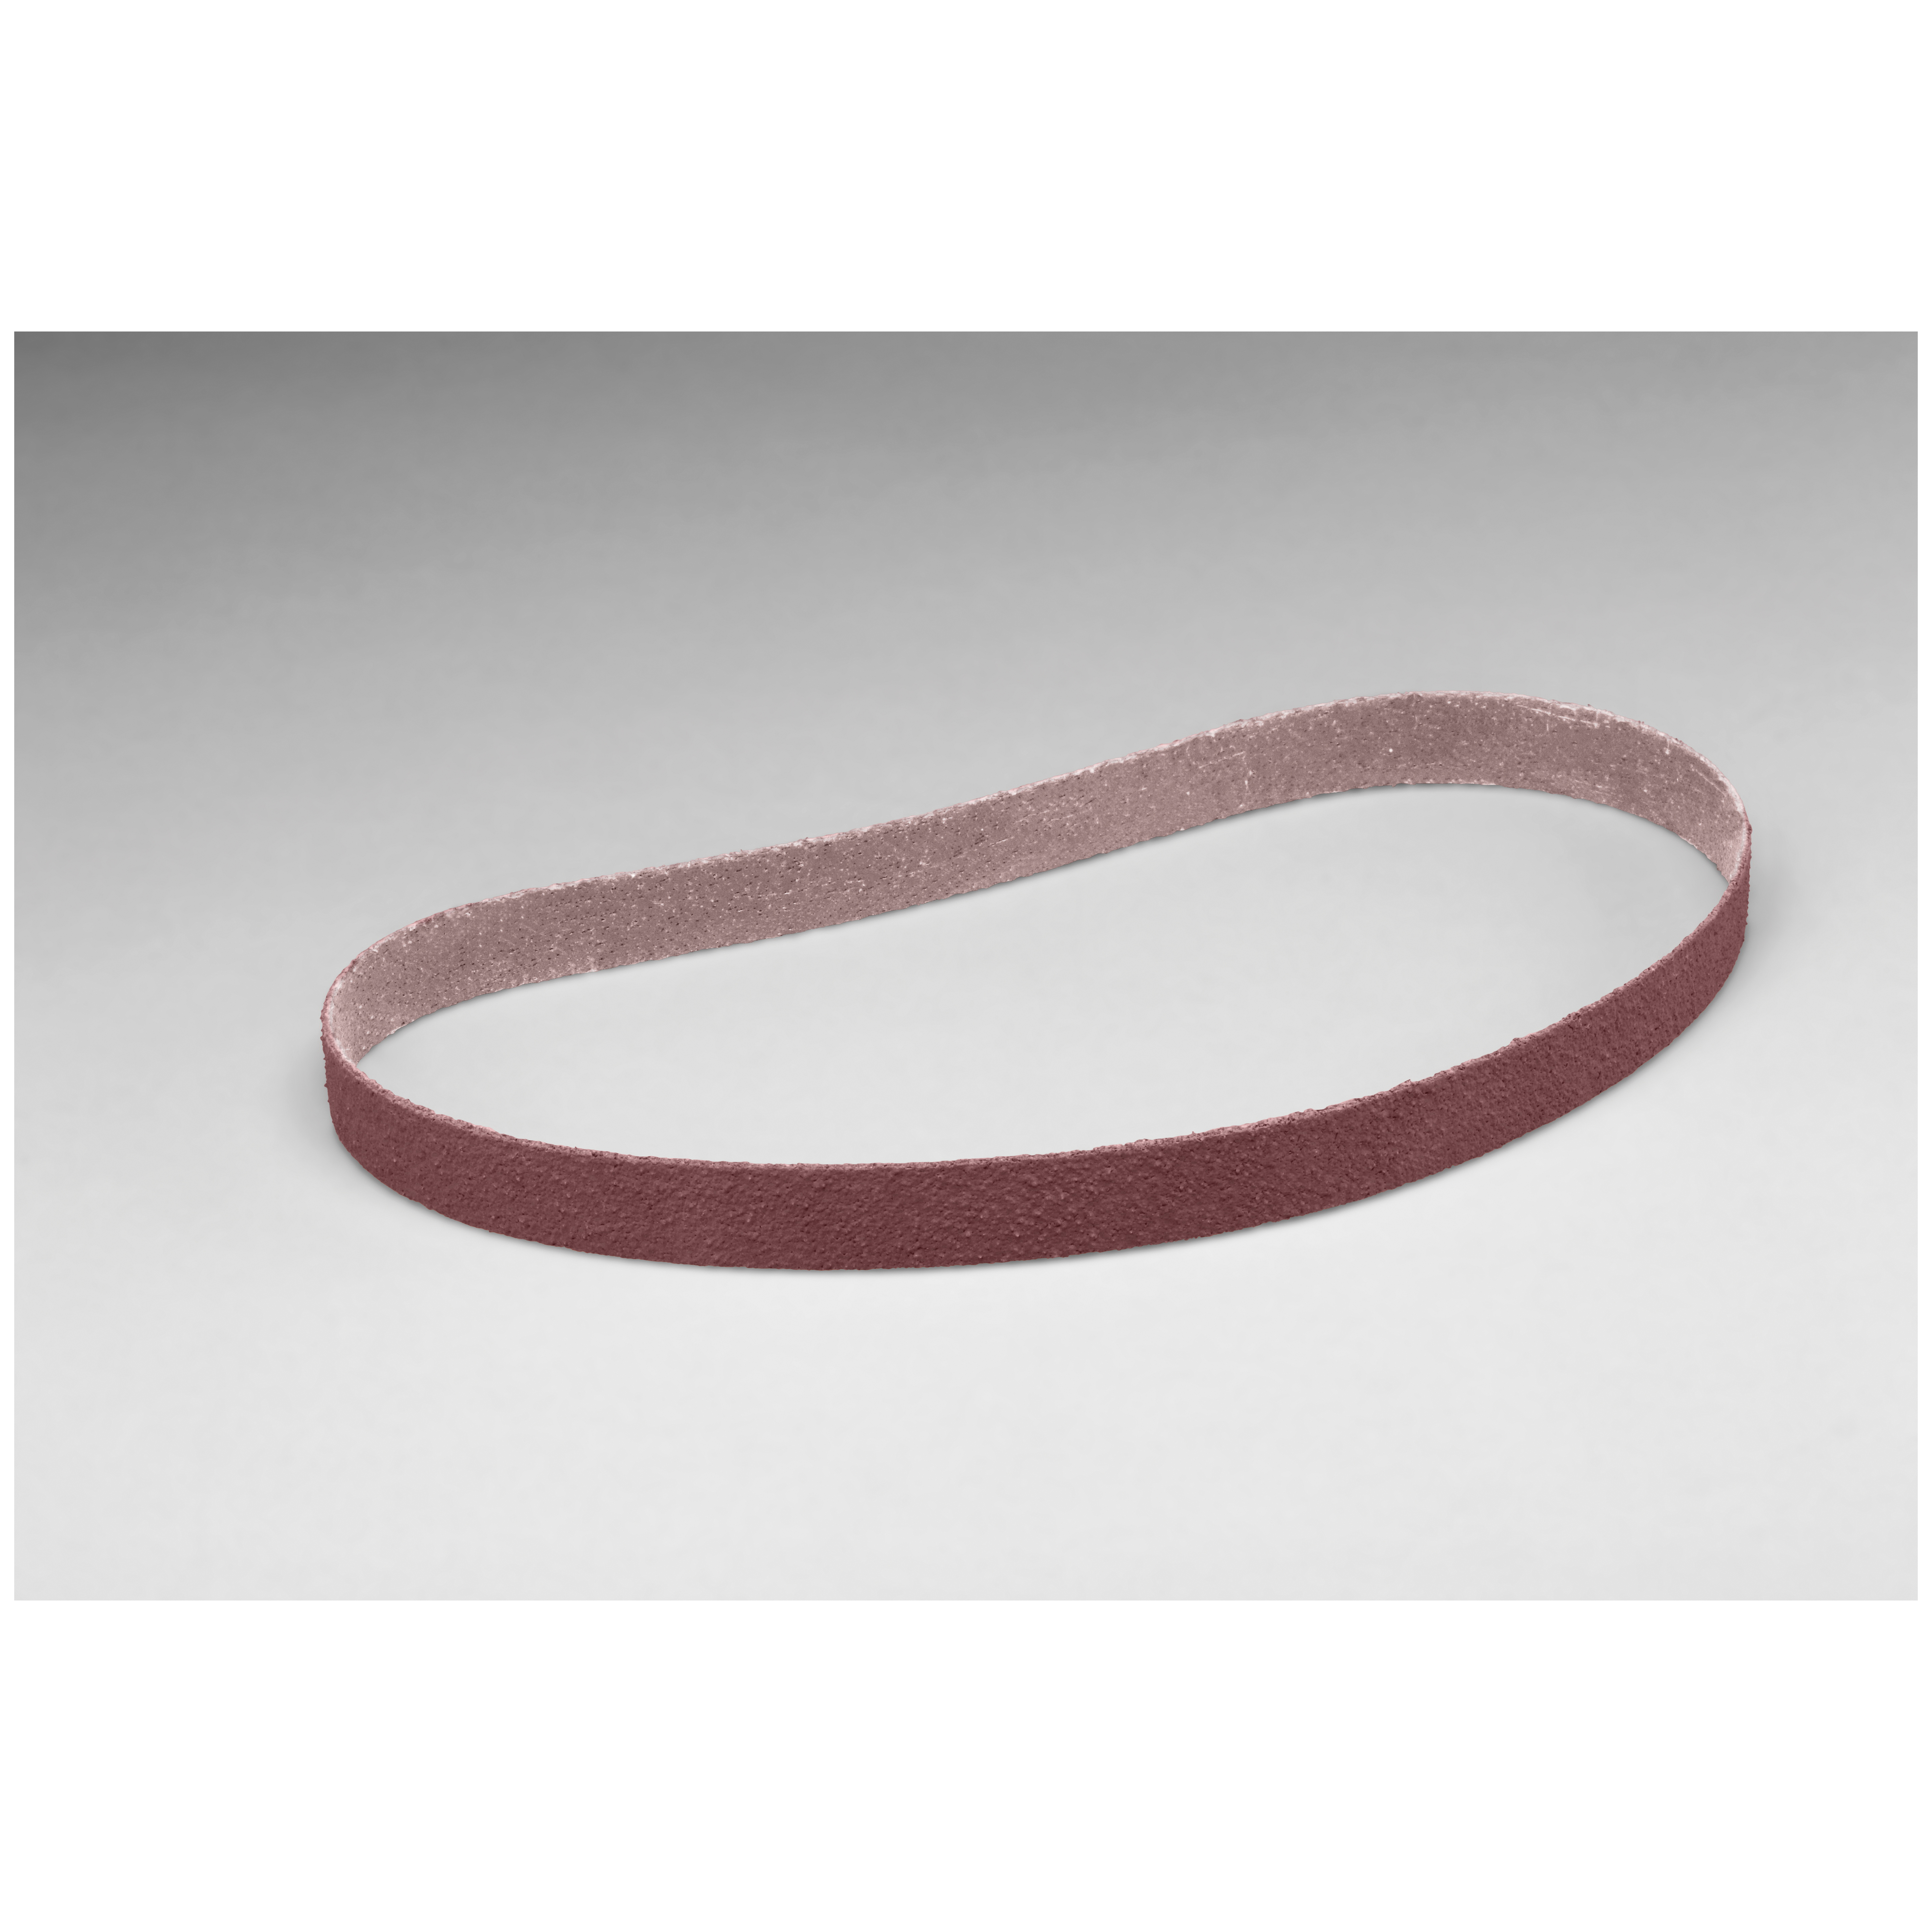 3M™ 051144-26814 File Coated Abrasive Belt, 1-1/2 in W x 18-15/16 in L, P180 Grit, Very Fine Grade, Aluminum Oxide Abrasive, Cloth Backing